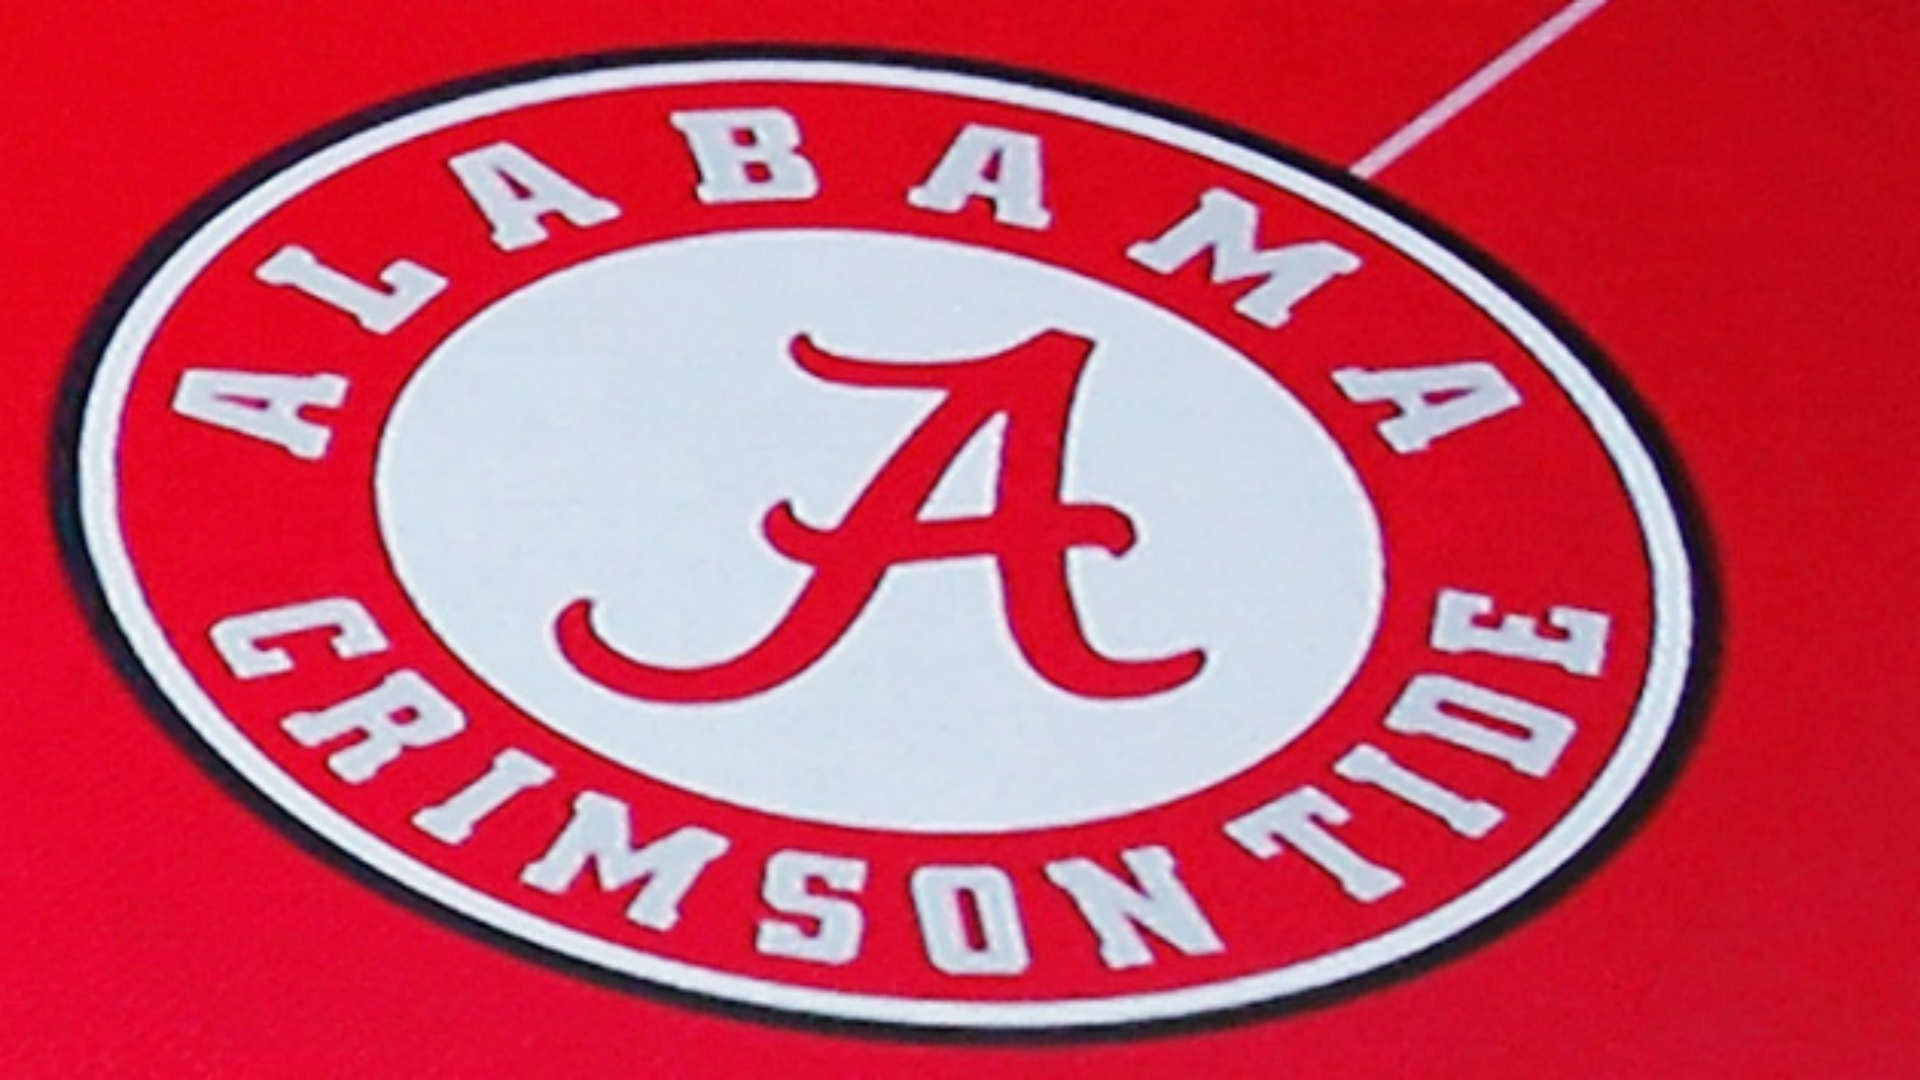 Alabama baseball coach threatens to pull players' scholarships, gets fired